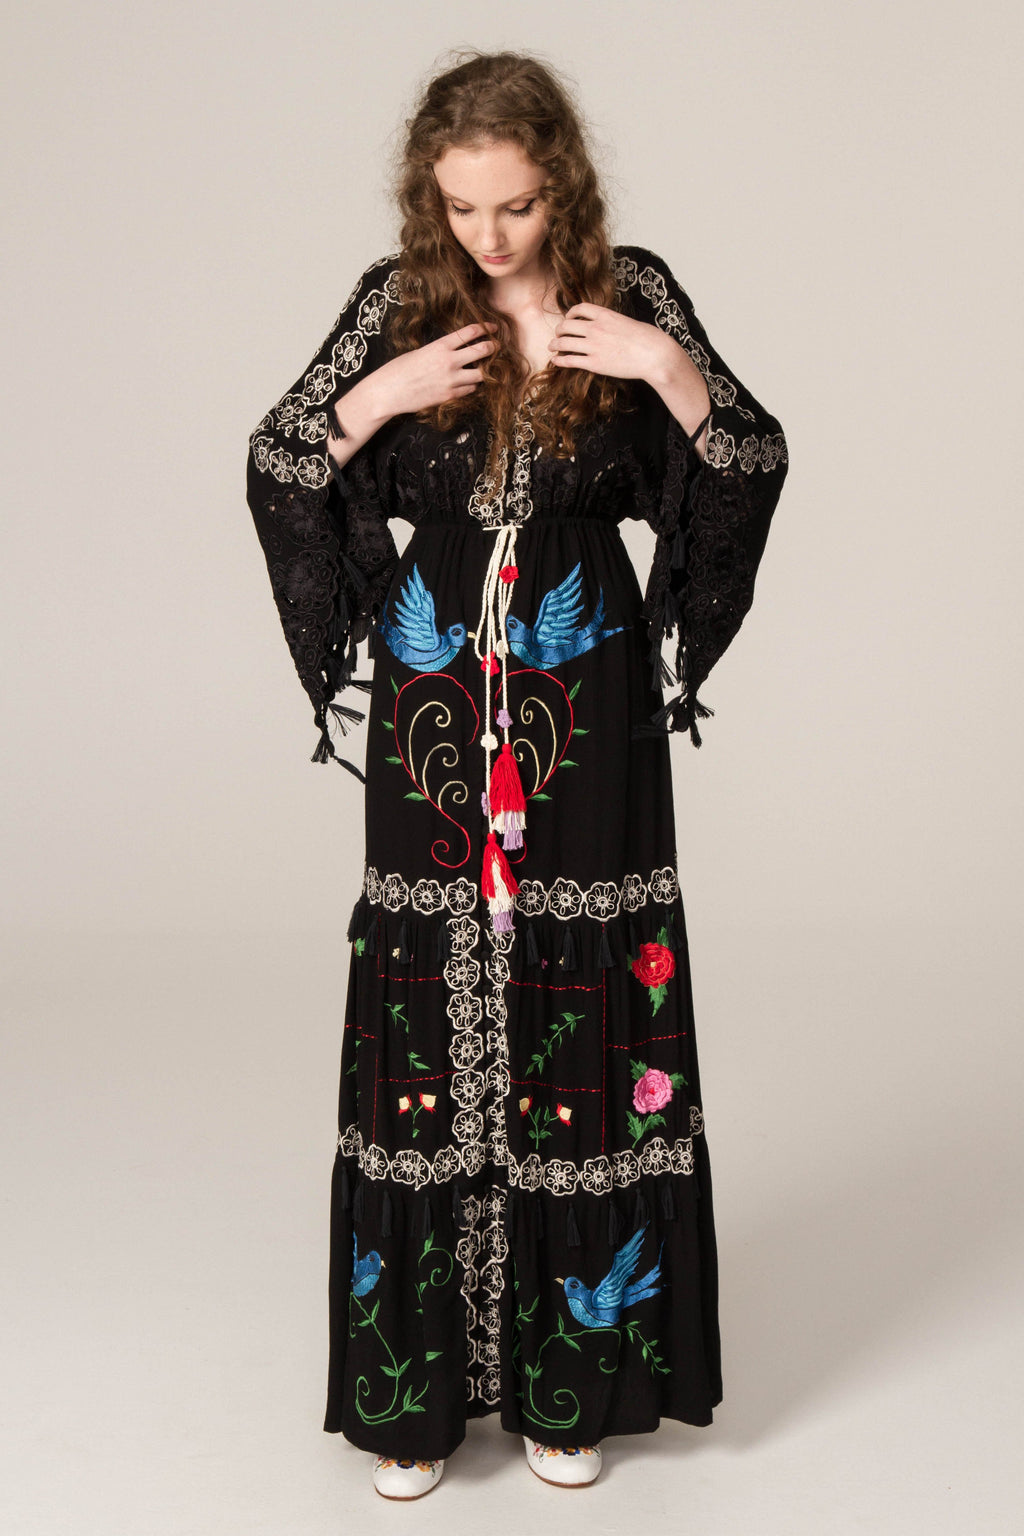 FILLYBOO - 'HEART ON THE FLOOR' - HAND EMBROIDERED DUSTER - BLACK